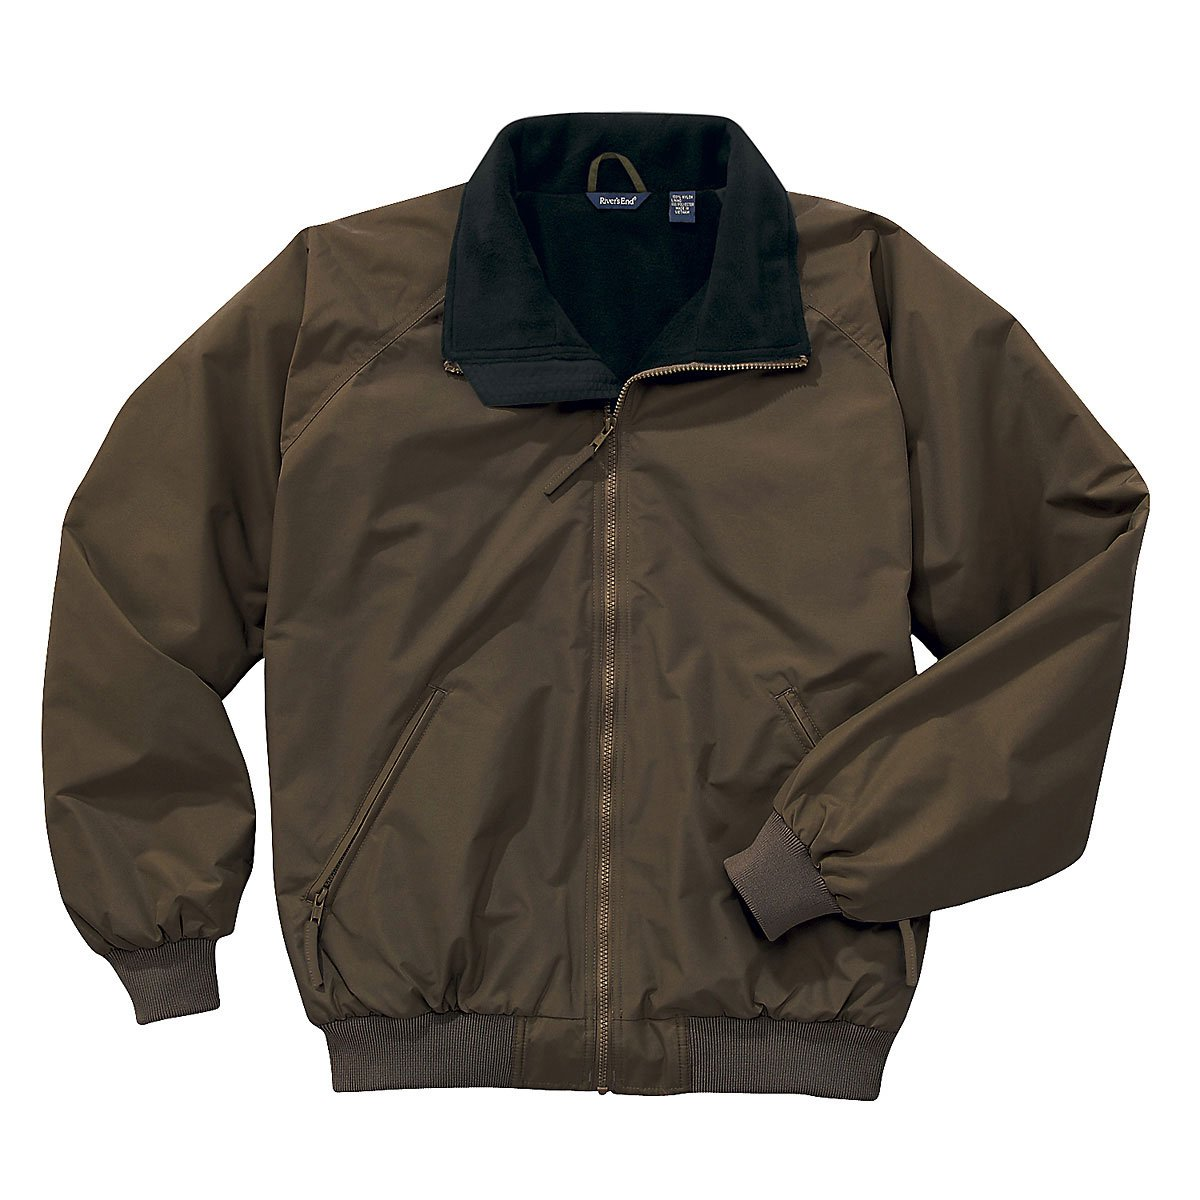 River's End Tahoe Fleece - Lined Bomber Jacket